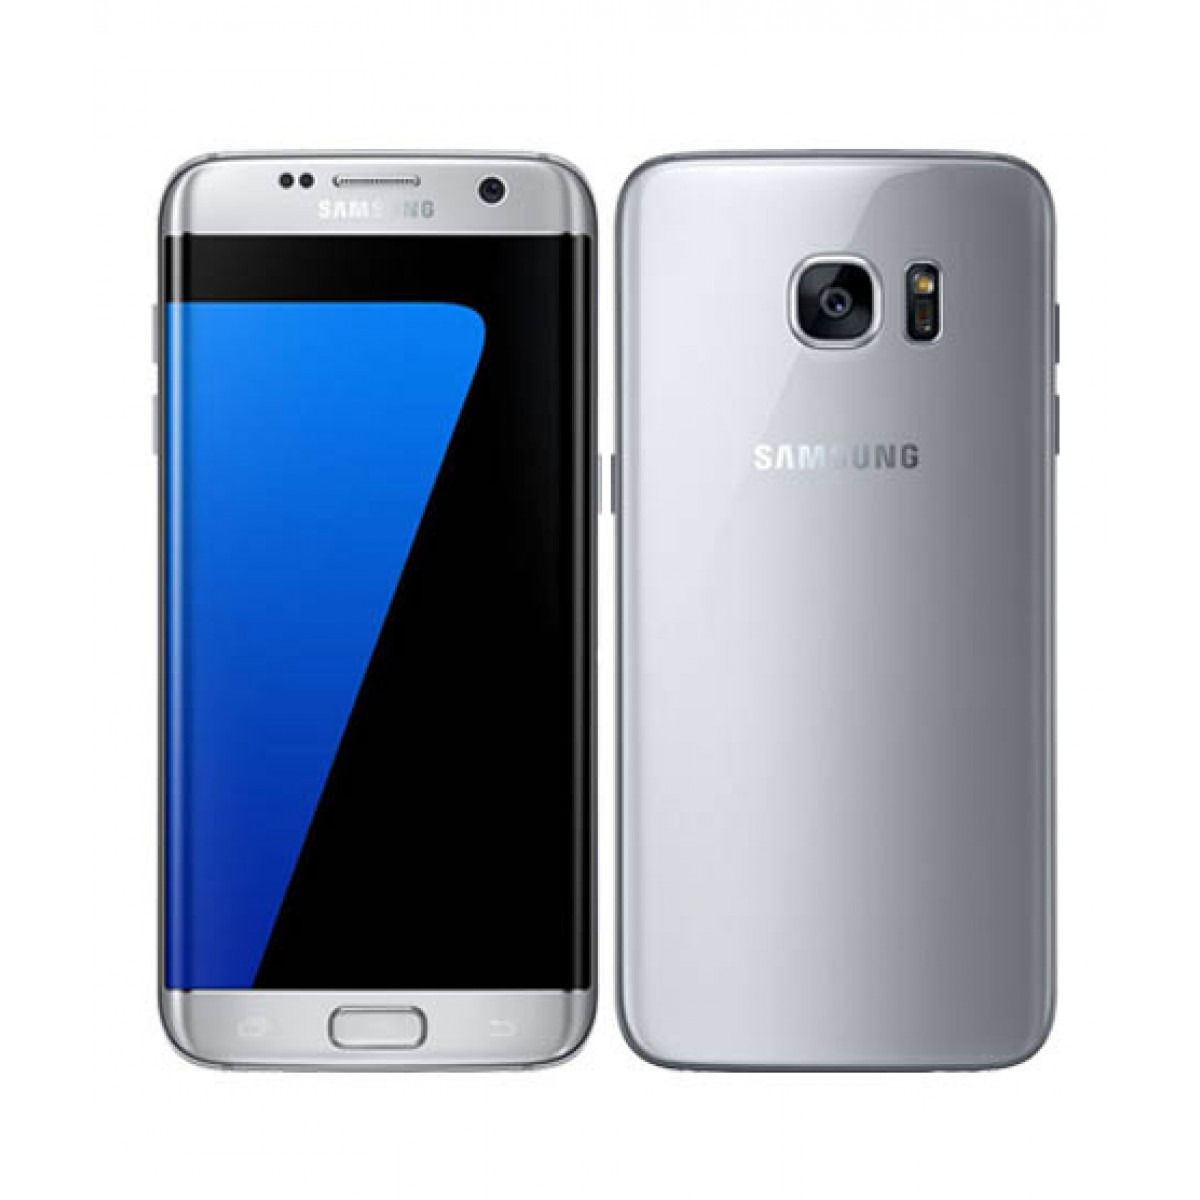 Samsung Galaxy S7 32GB SM-G930A AT&T GSM Unlocked 4G LTE Android Smartphone